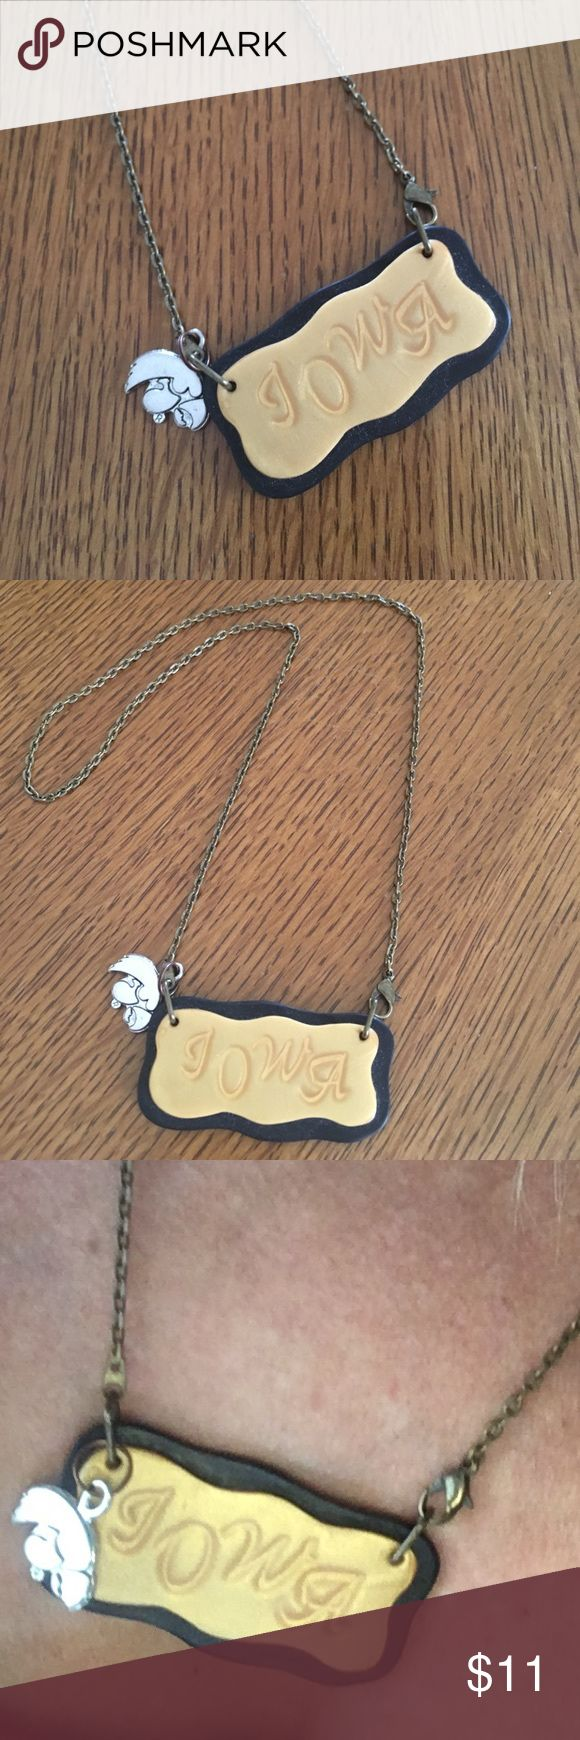 Unique handmade IOWA necklace. Very light weight Clasp opening down at bottom by Iowa pendant. Added tiger hawk charm. Go Iowa ! Football 🏈 is approaching fast Jewelry Necklaces